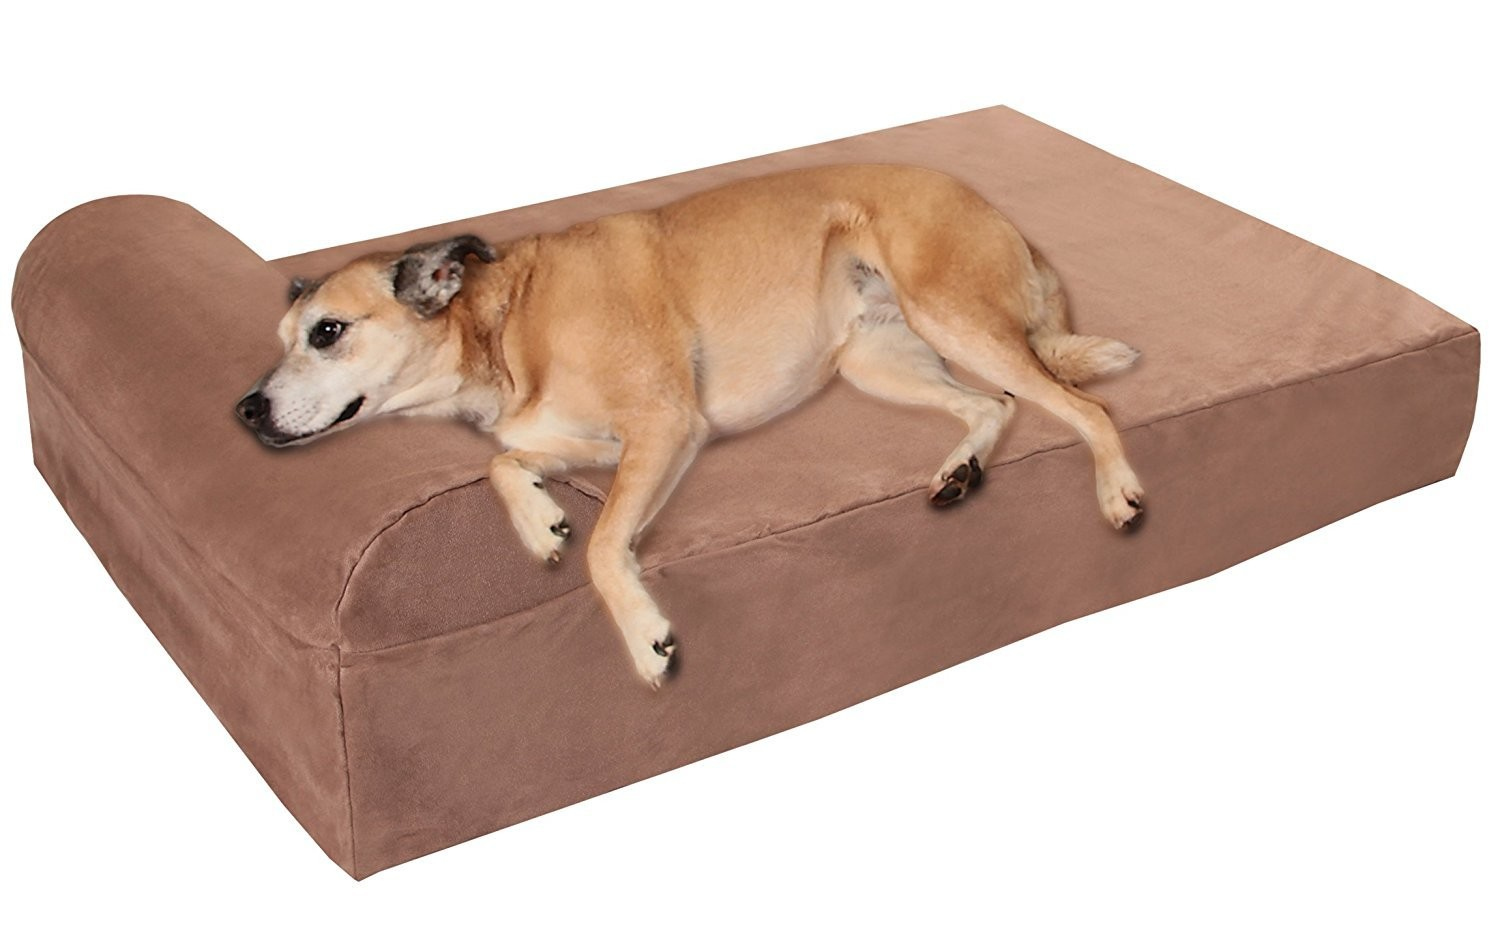 12 of the Highest-Rated Dog Supplies on Amazon That Are Perfect for Your Furry BFF